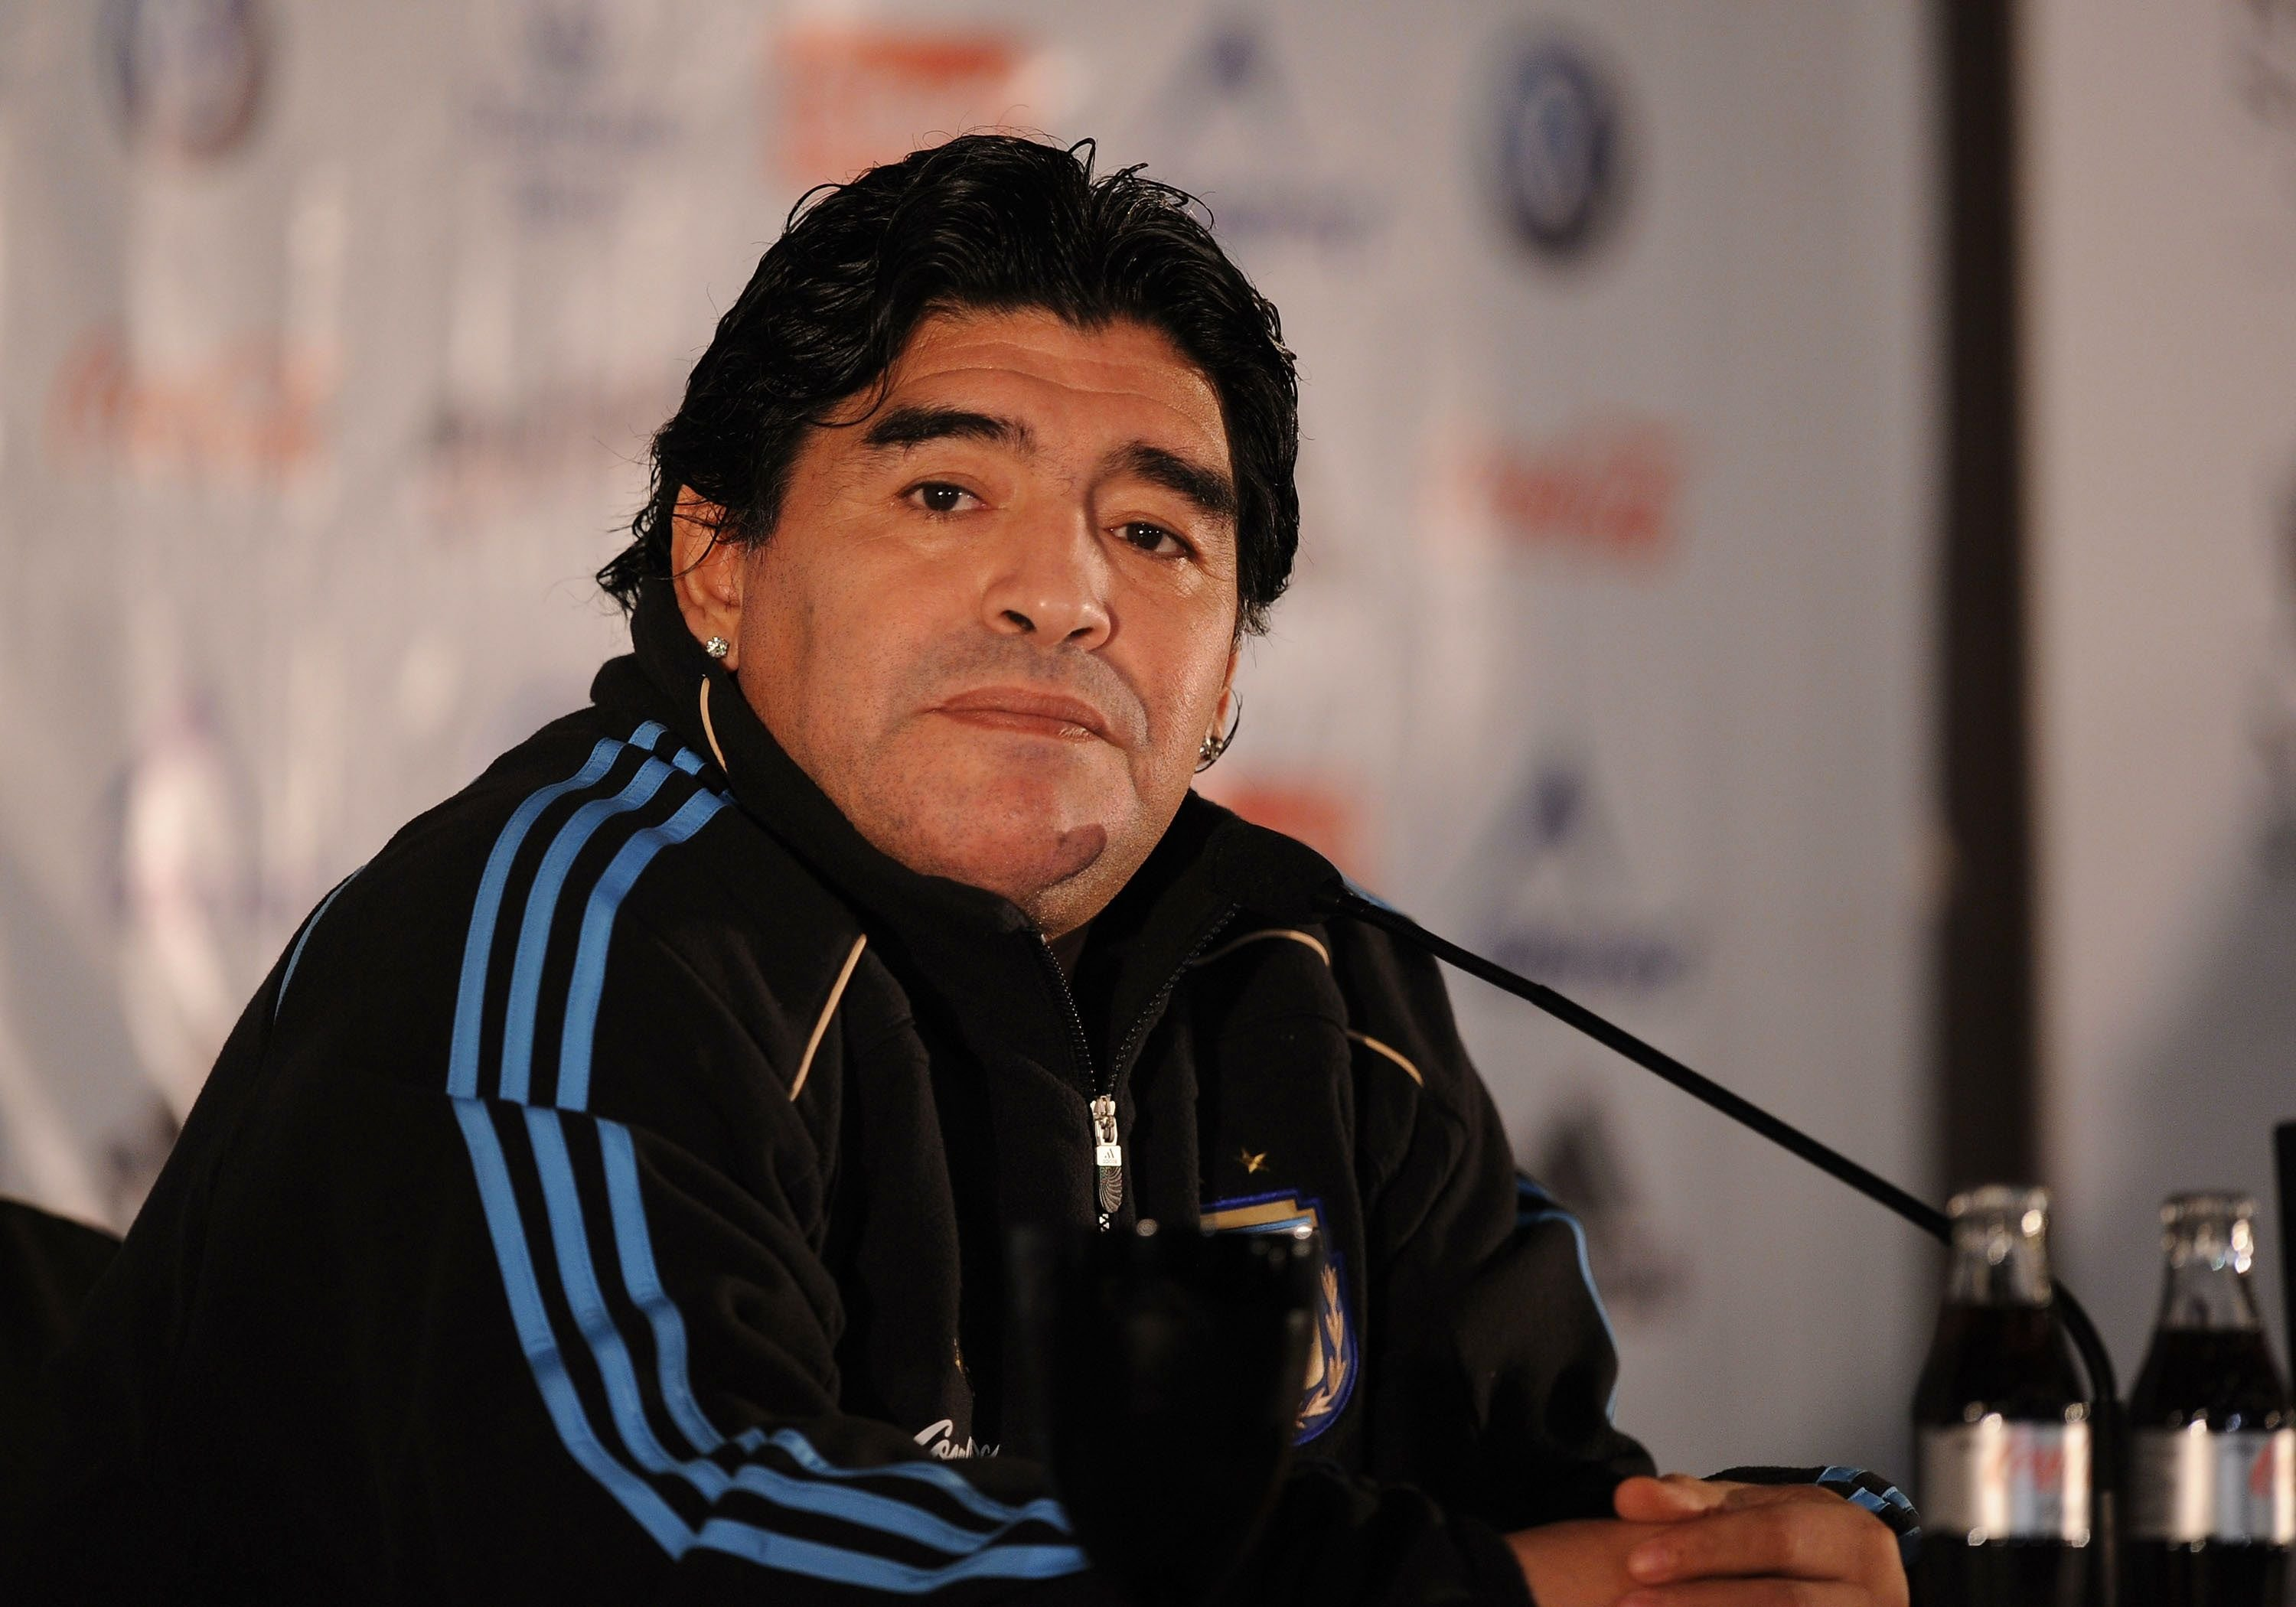 Diego Maradona attends a press conference at a hotel on November 12, 2009 in Madrid, Spain.   Photo: Getty Images